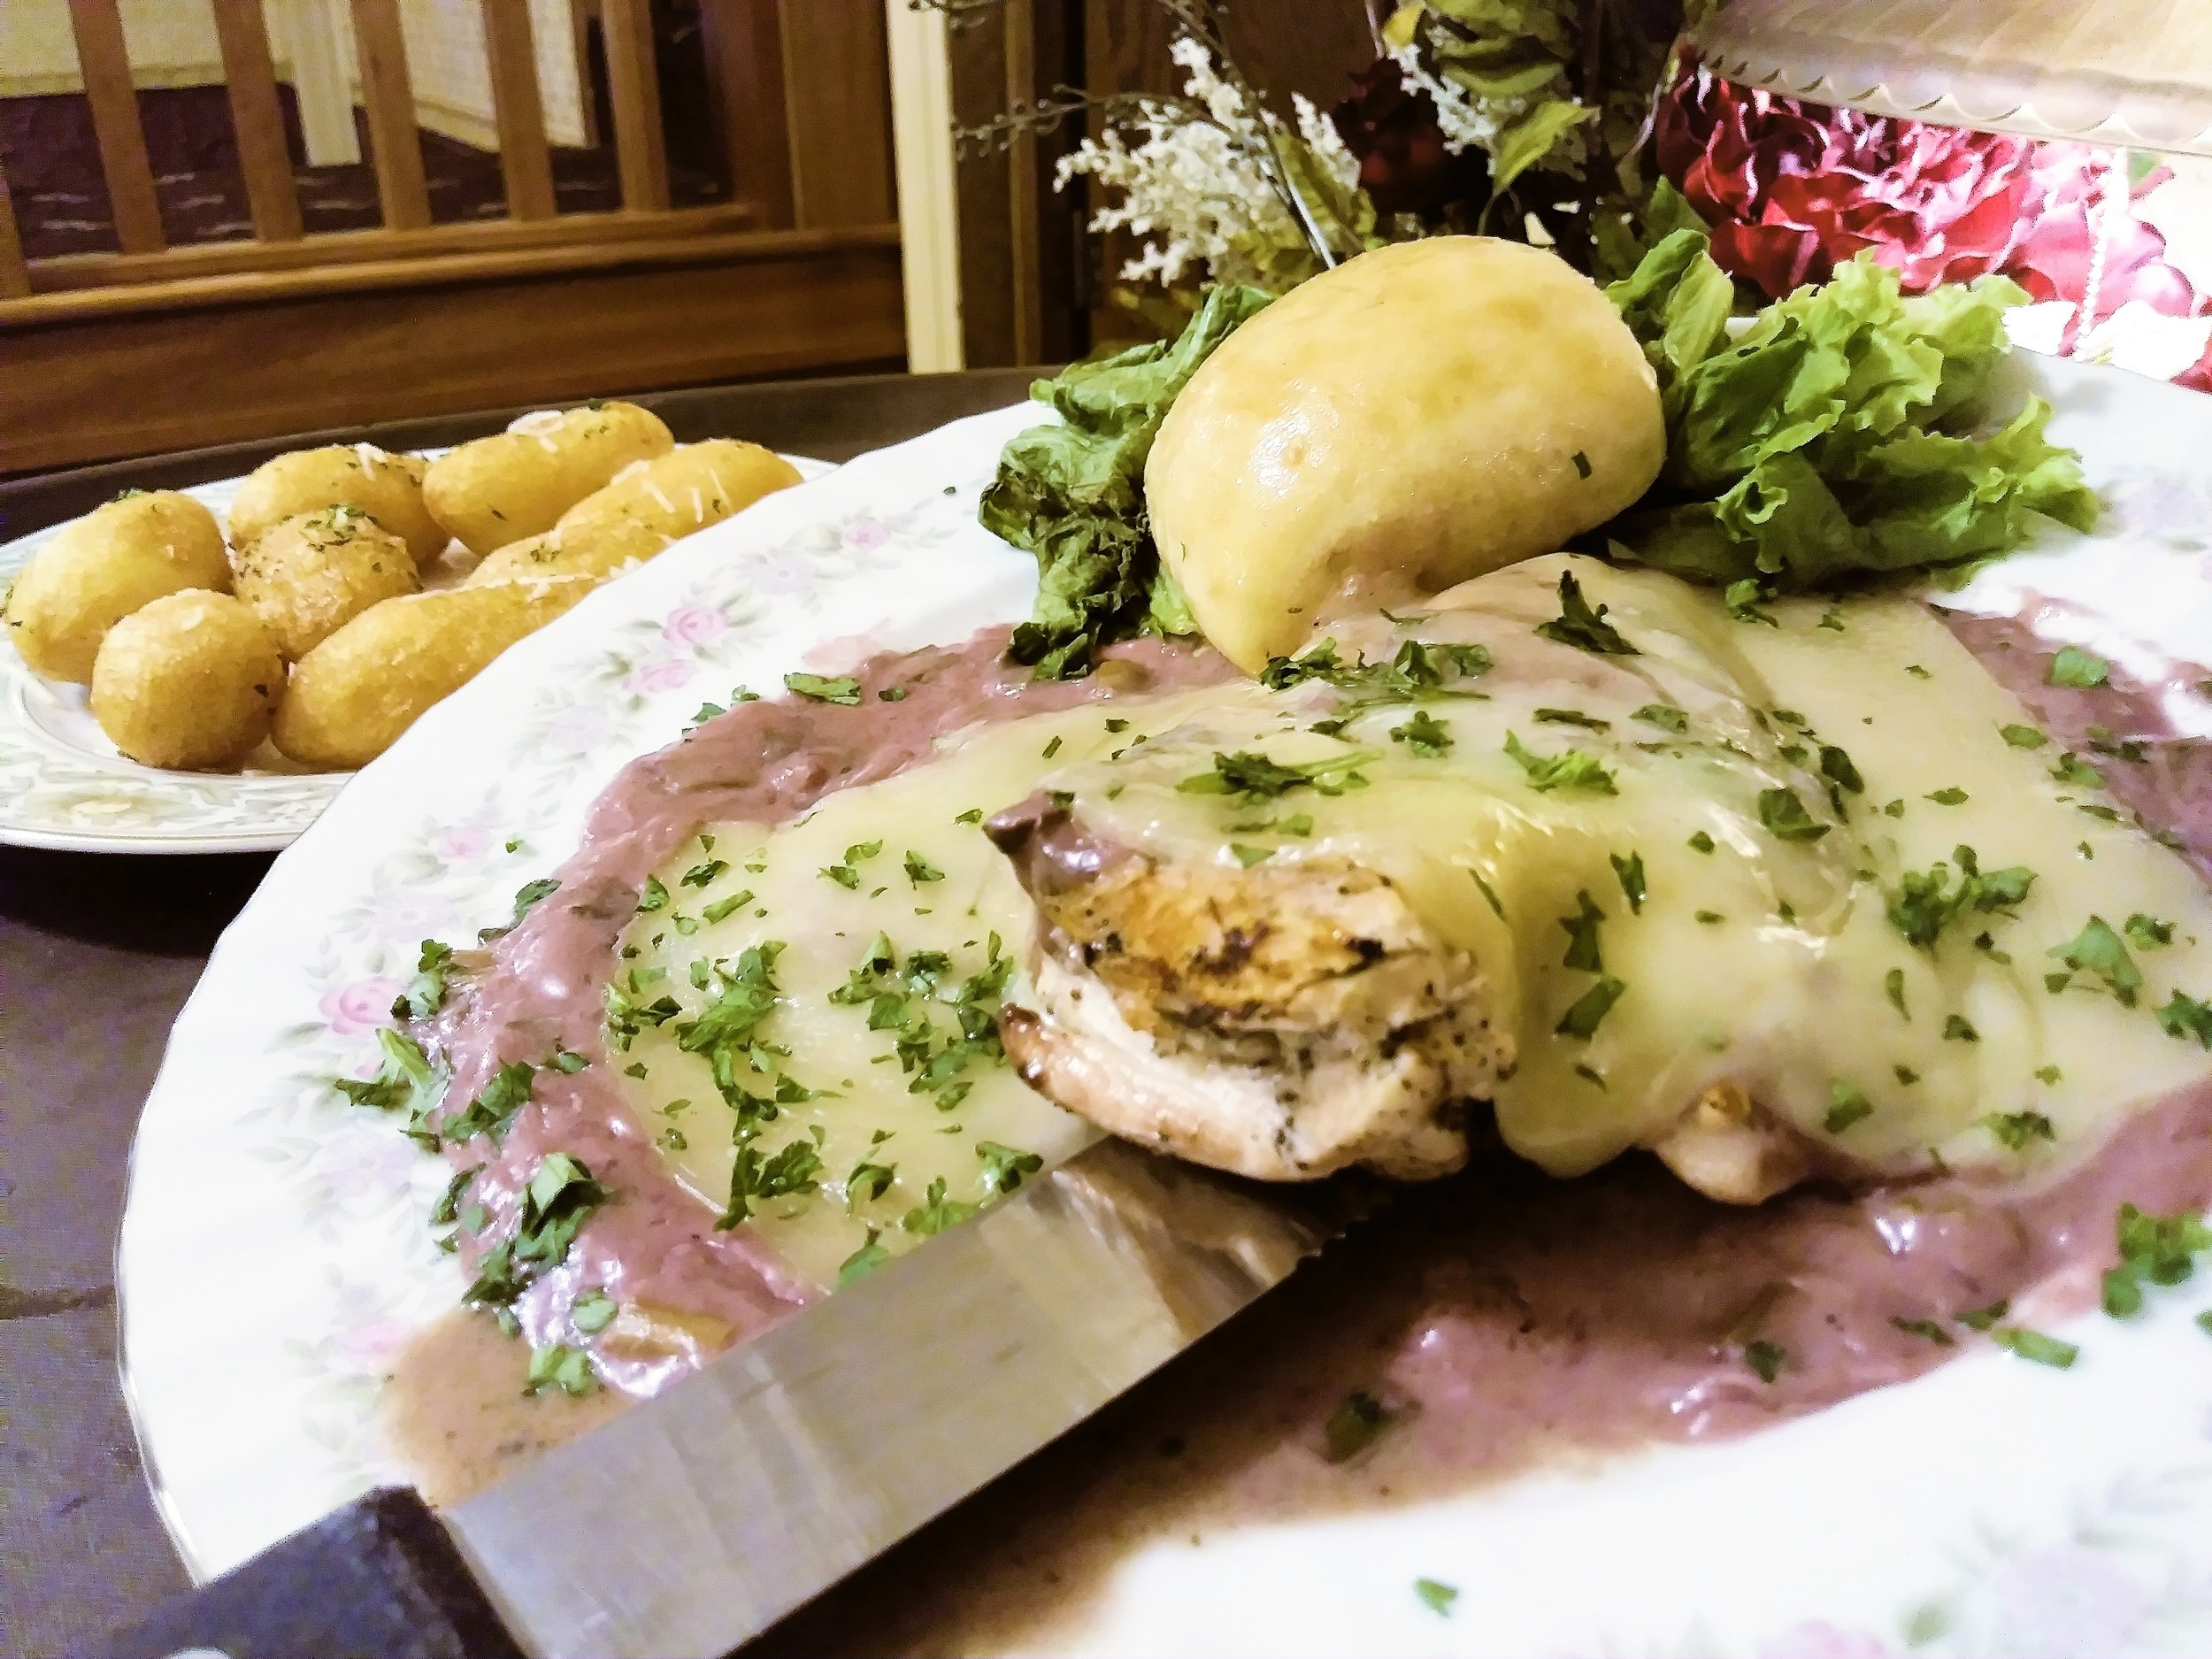 Mushroom & Swiss Chicken - A 6 ounce broiled chicken breast topped with sautéed mushrooms & onions in a red wine garlic cream sauce, and topped with melted swiss cheese $14.99